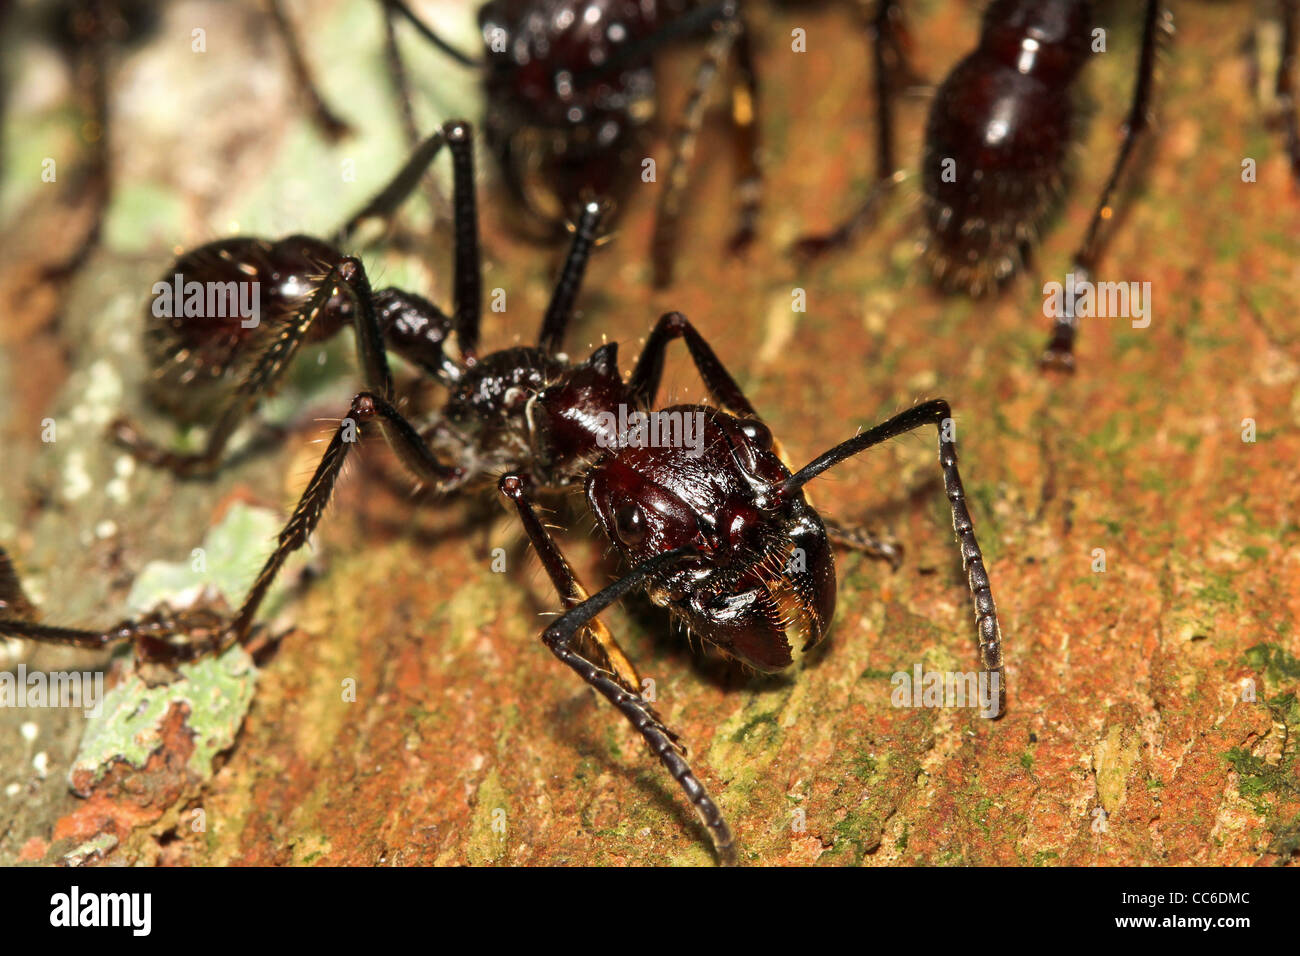 Bullet Ants in the Peruvian Amazon: the most painful and dangerous stinging insect in the WORLD! Stock Photo